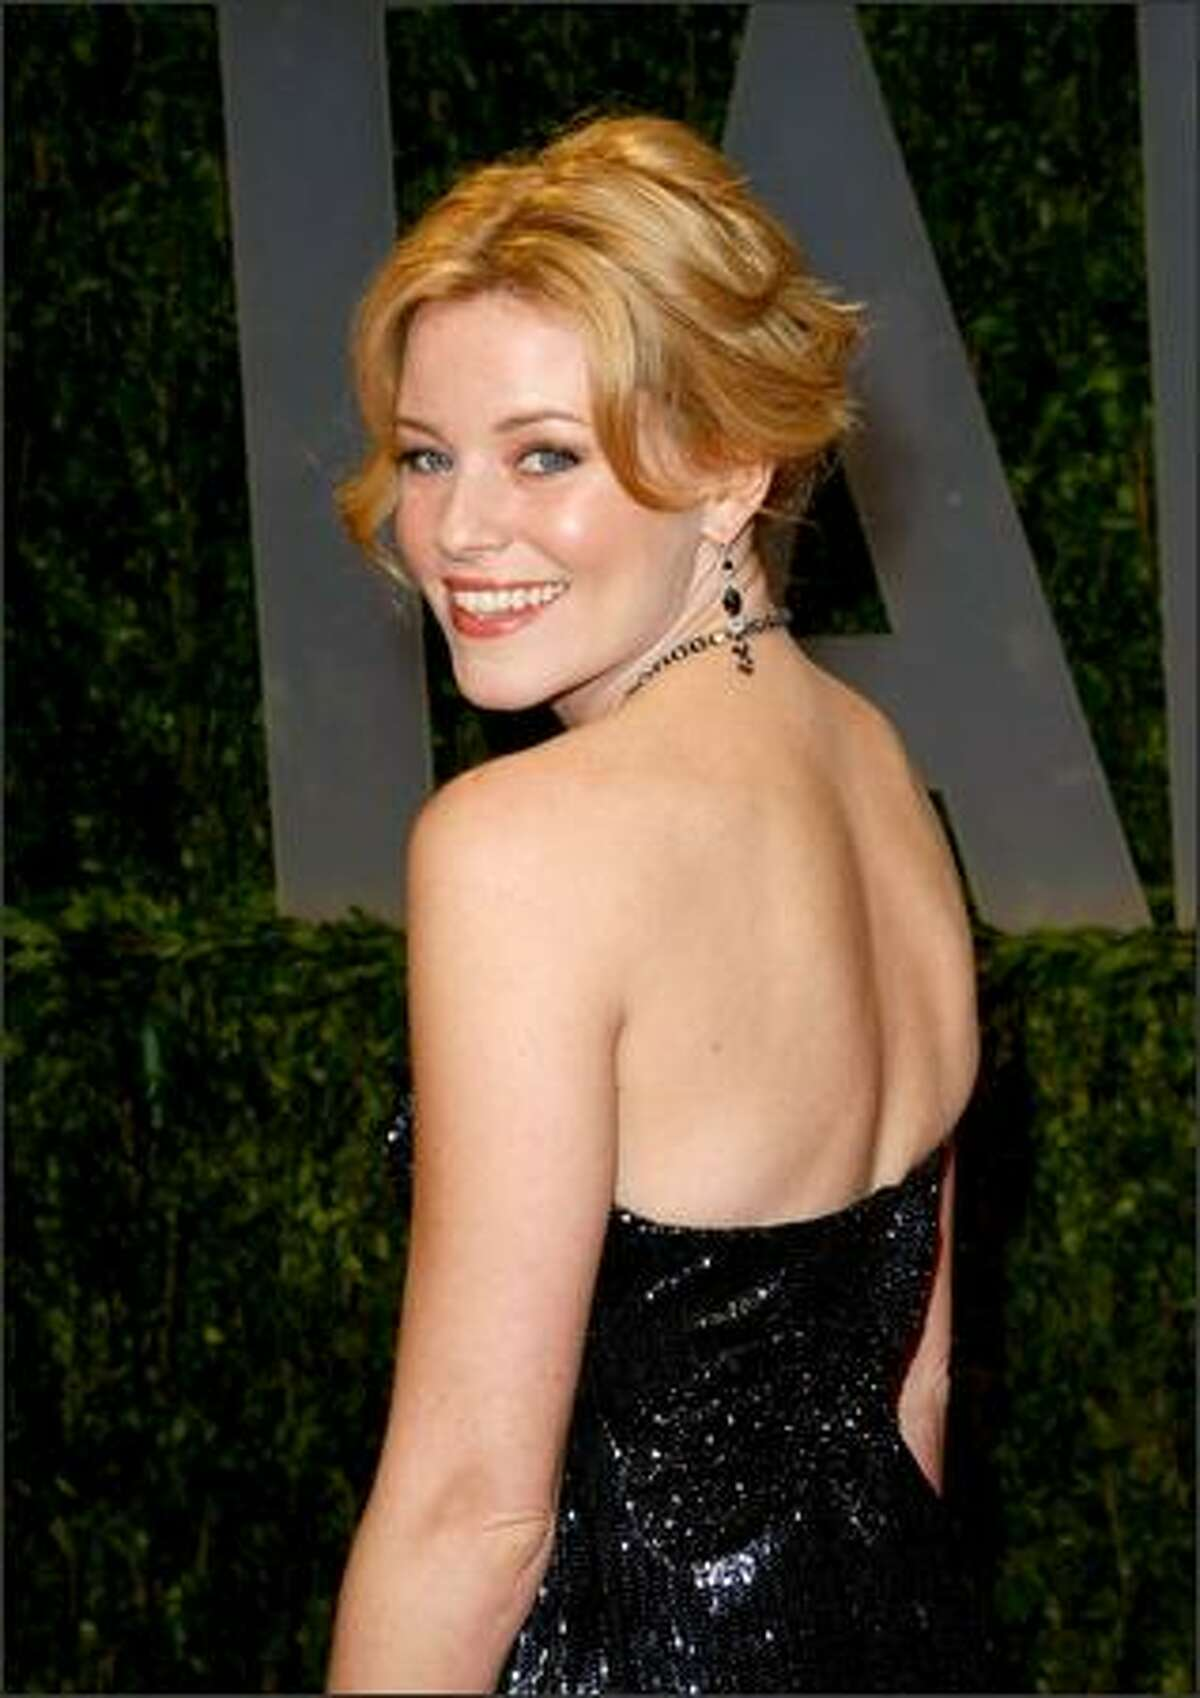 Actress Elizabeth Banks arrives at the 2009 Vanity Fair Oscar party hosted by Graydon Carter held at the Sunset Tower in West Hollywood, Calif., on Sunday, Feb. 22, 2009.